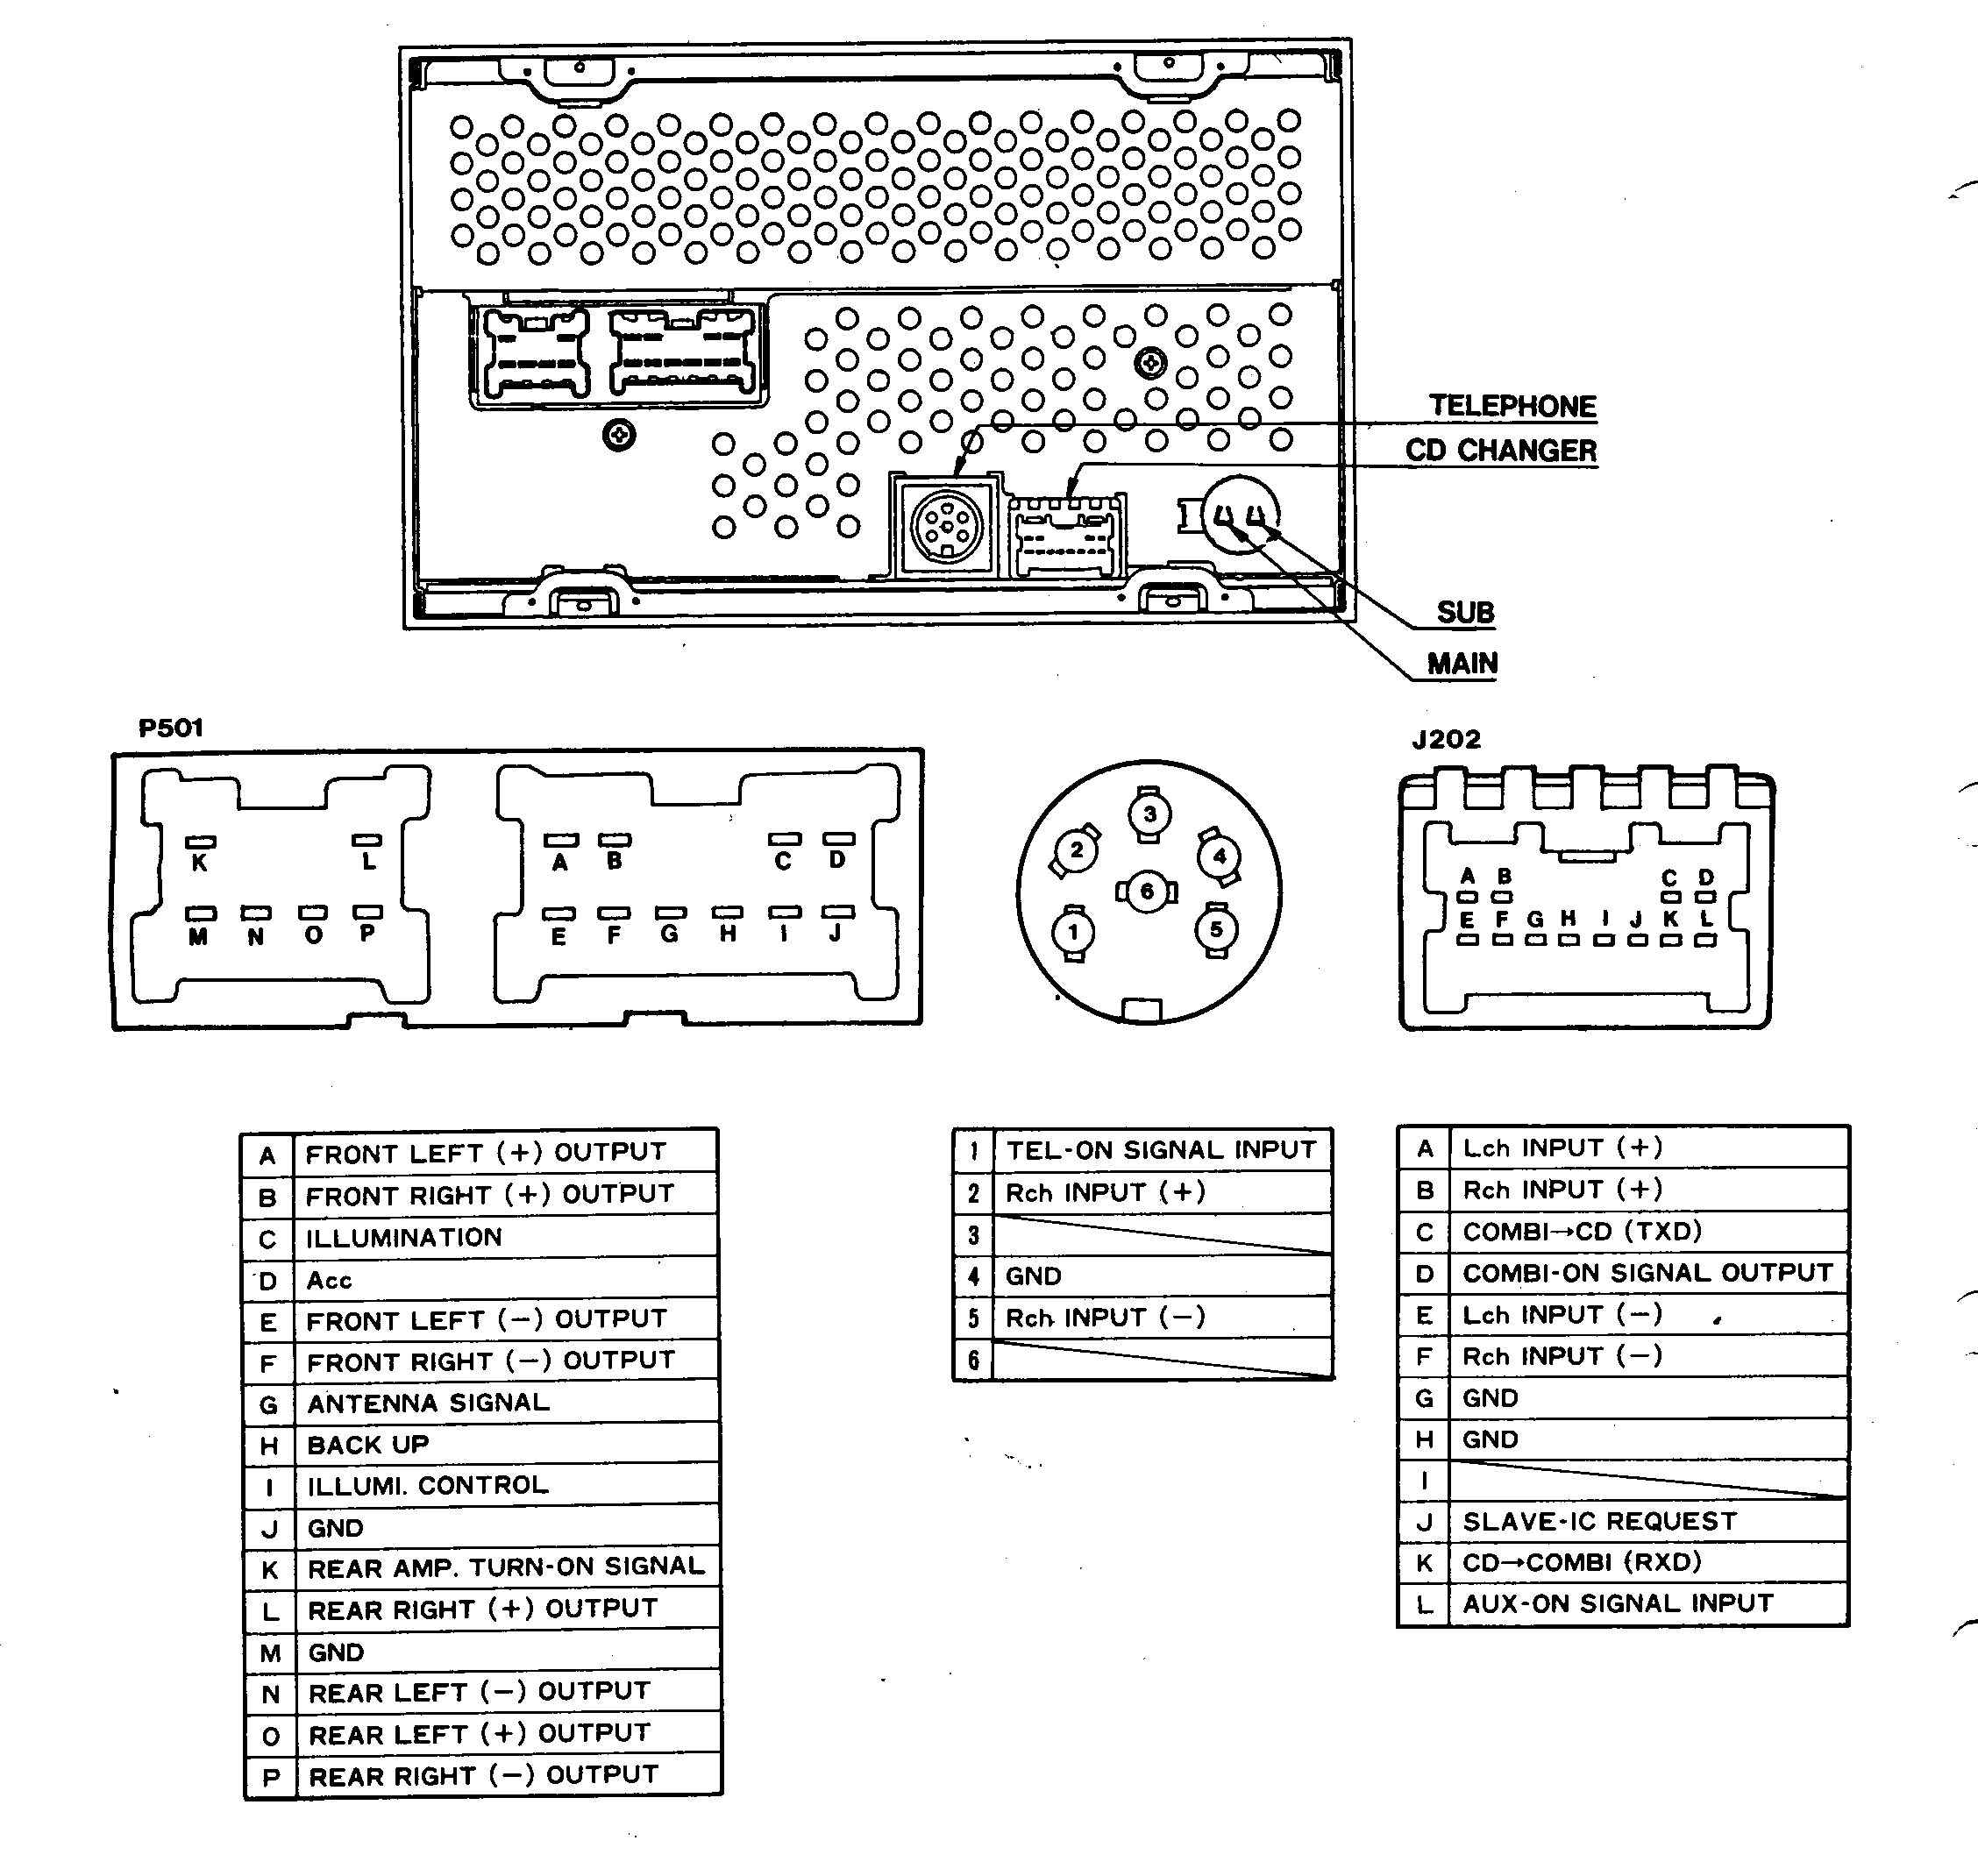 2001 Nissan Pathfinder Radio Wiring Diagram from www.tehnomagazin.com